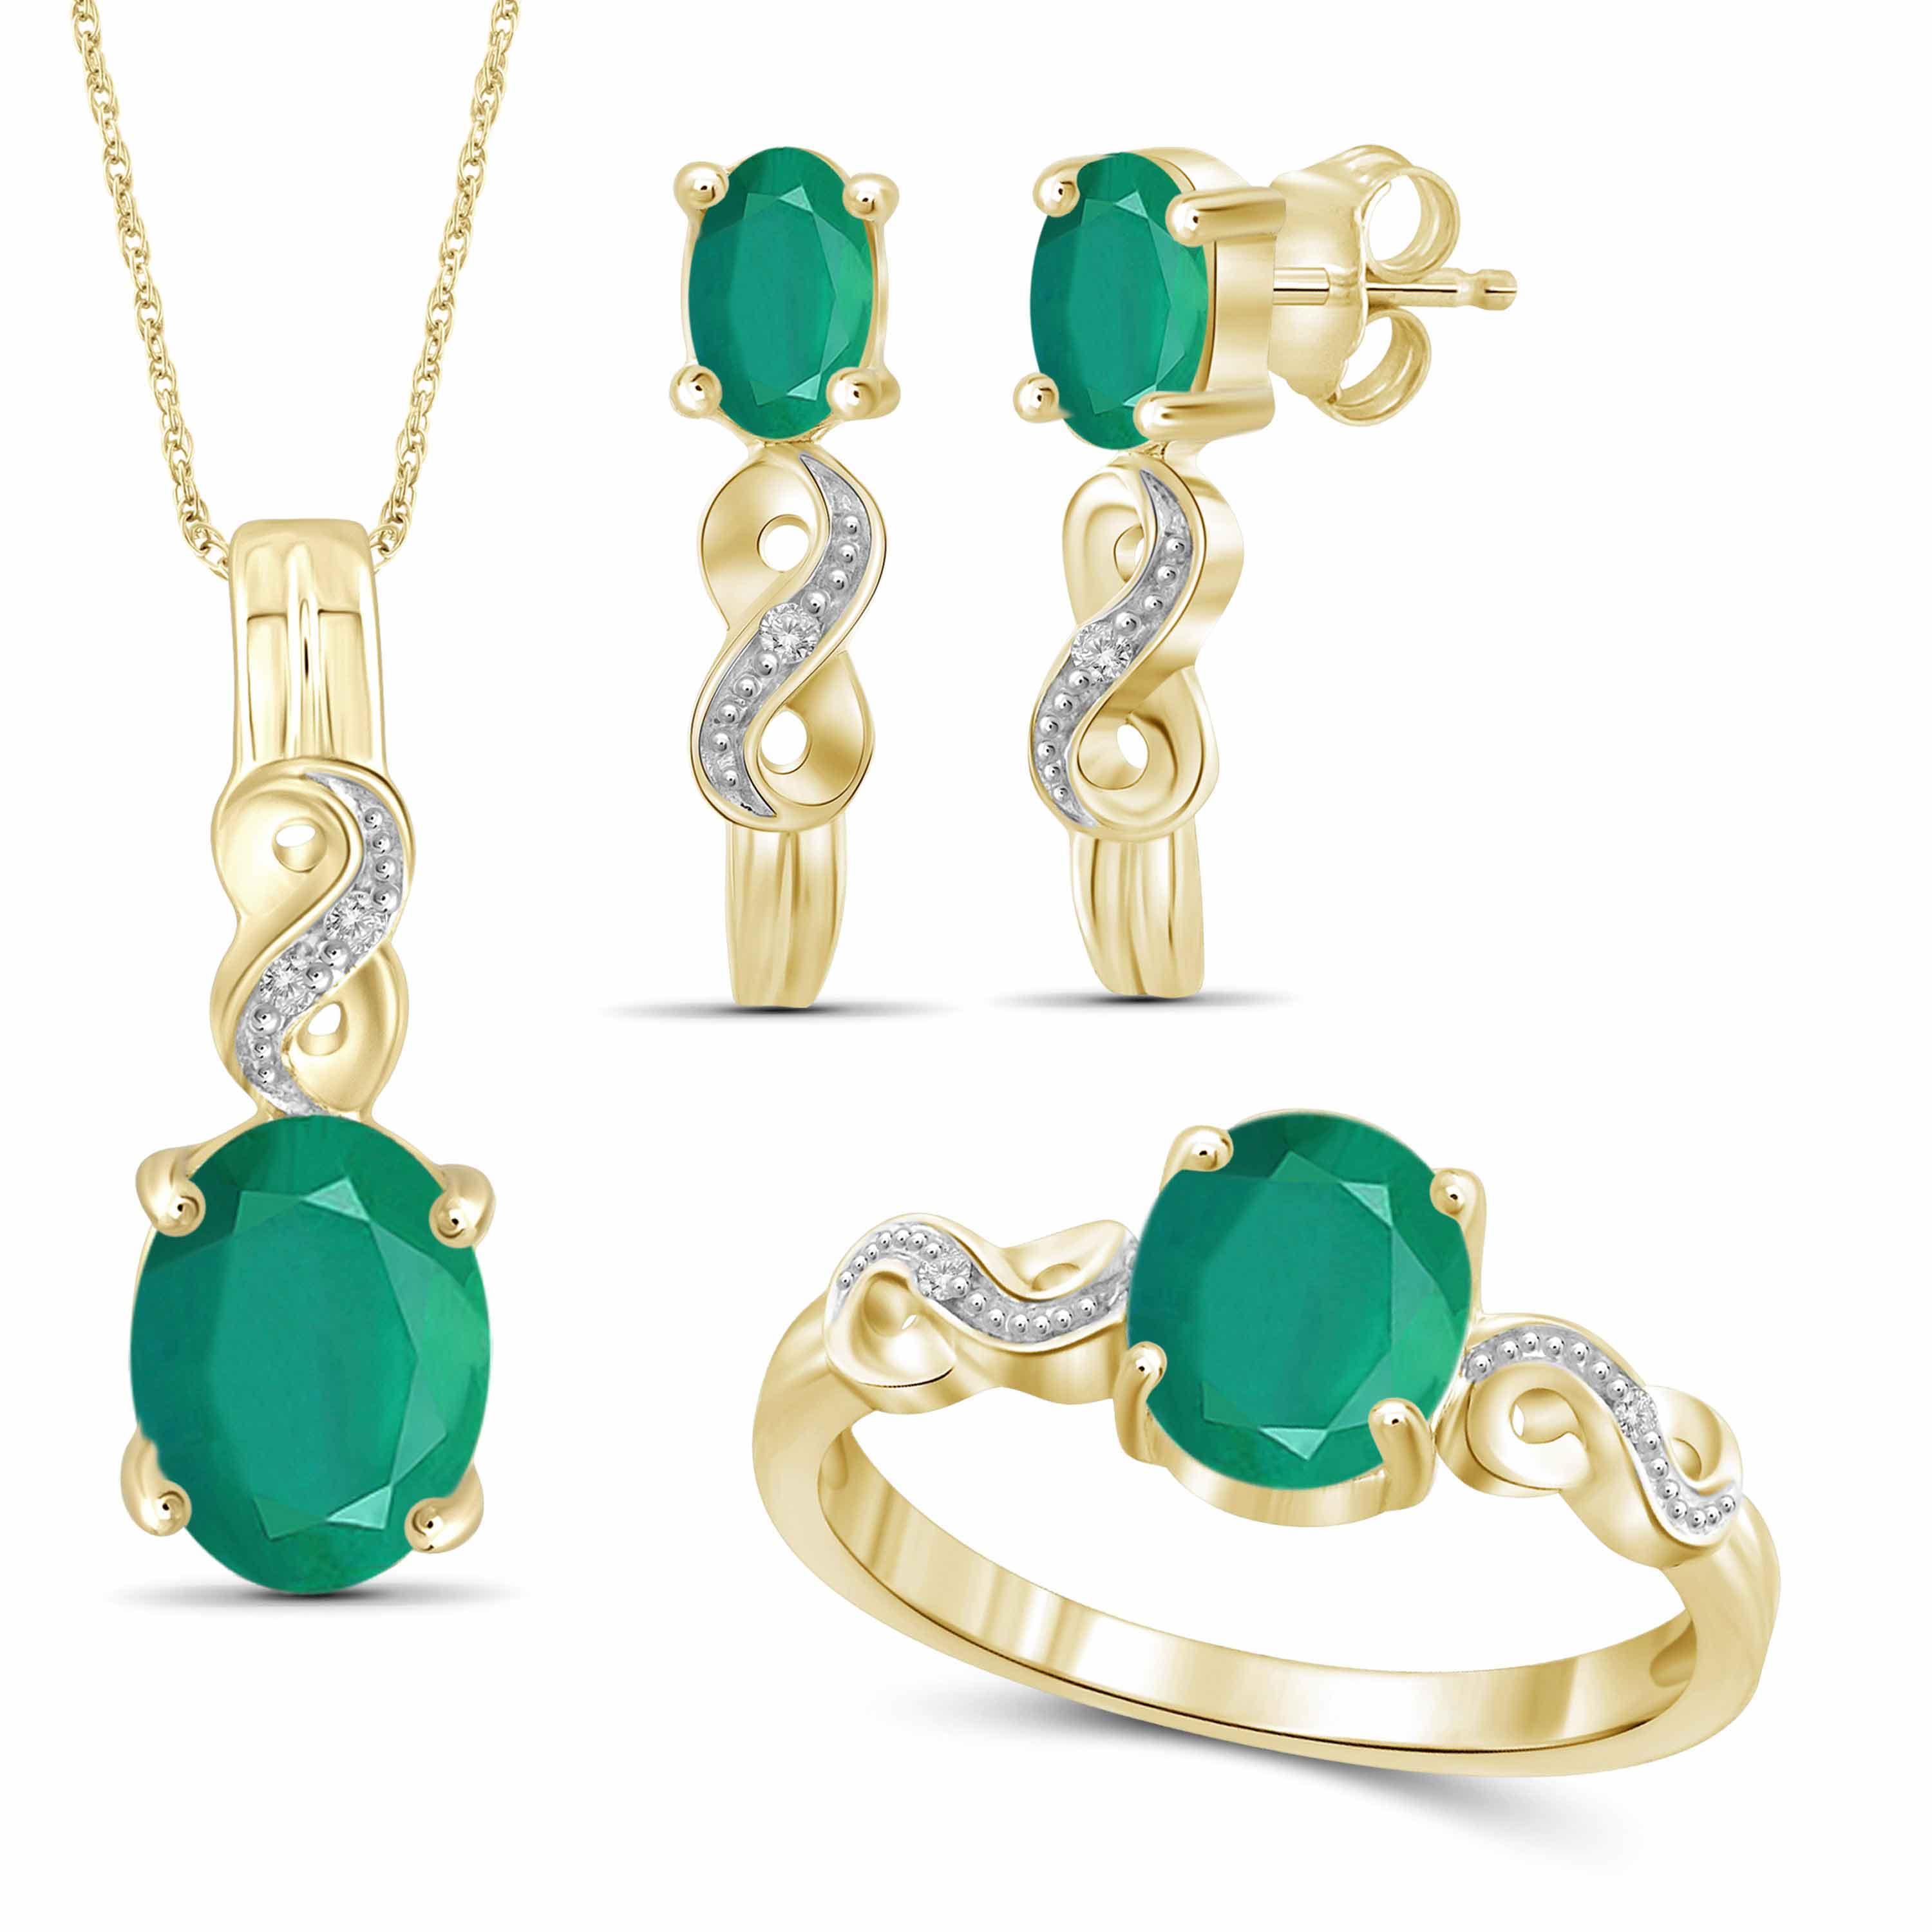 JewelersClub 3 1/3 Carat T.G.W. Emerald And White Diamond Accent 14K Gold over Silver 3-Piece Jewelry set